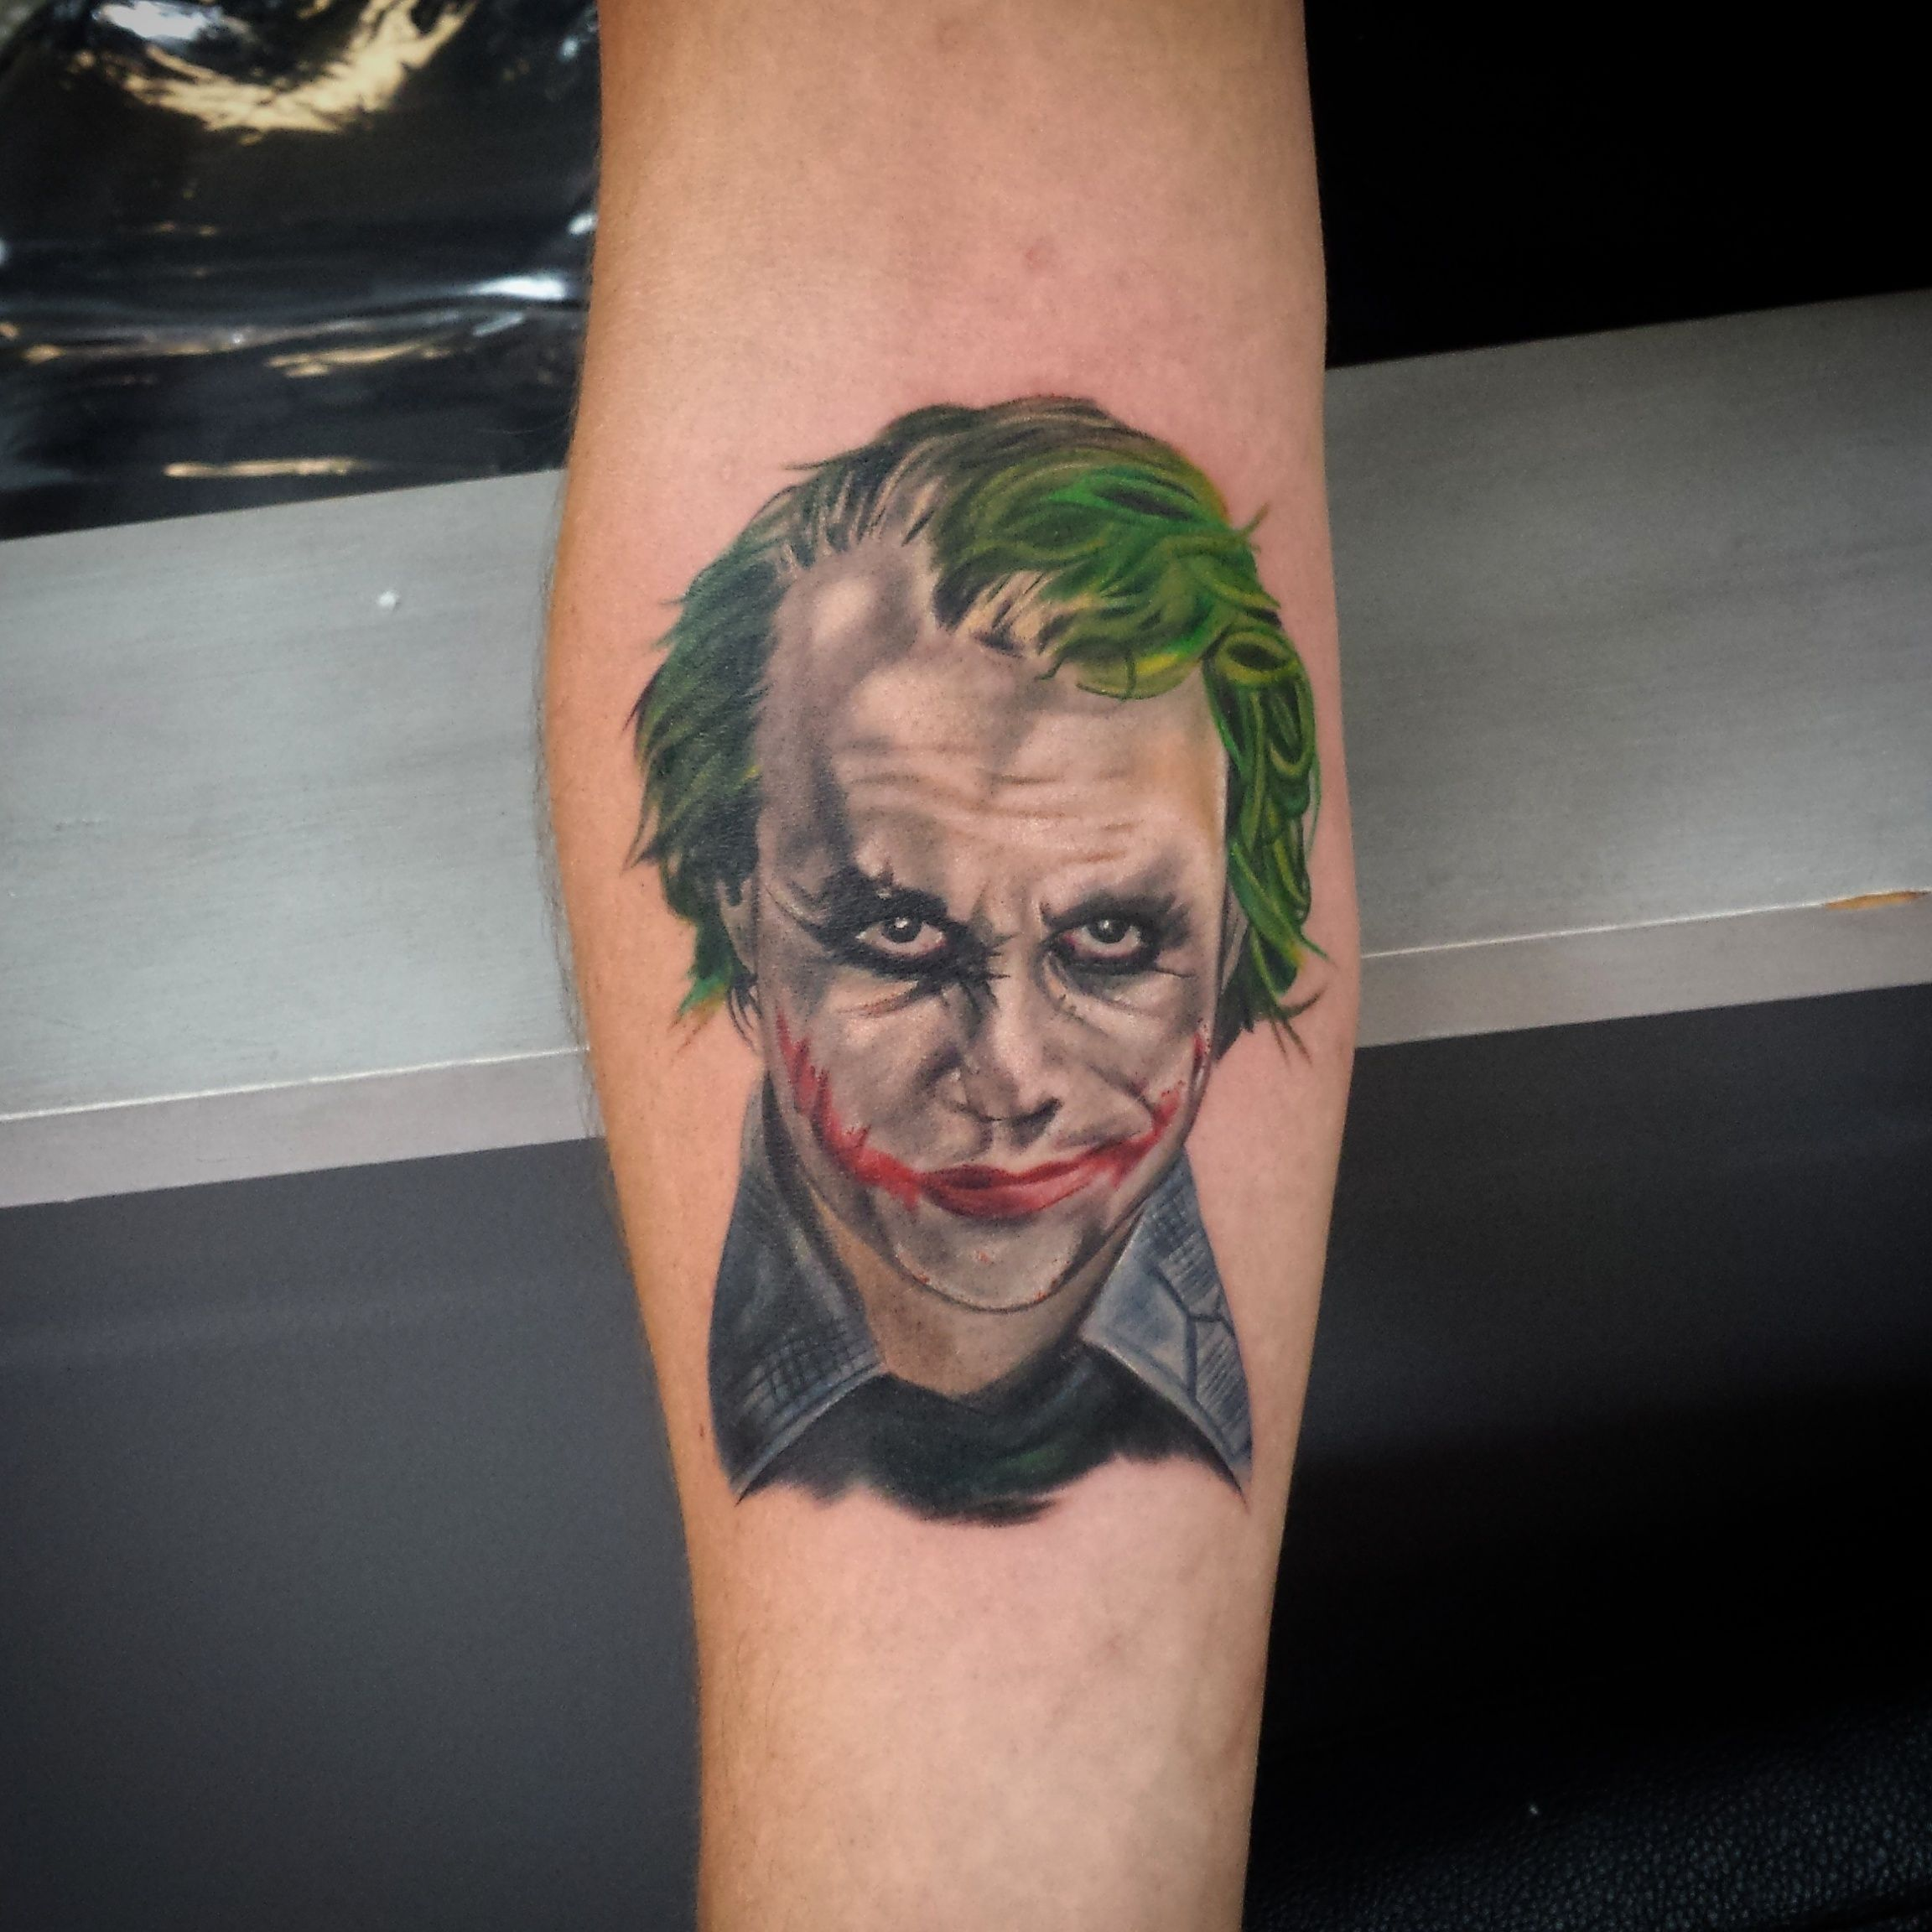 The Joker Tattoo Heath Ledger Sleeve Tattoos Joker Tattoo Tattoos